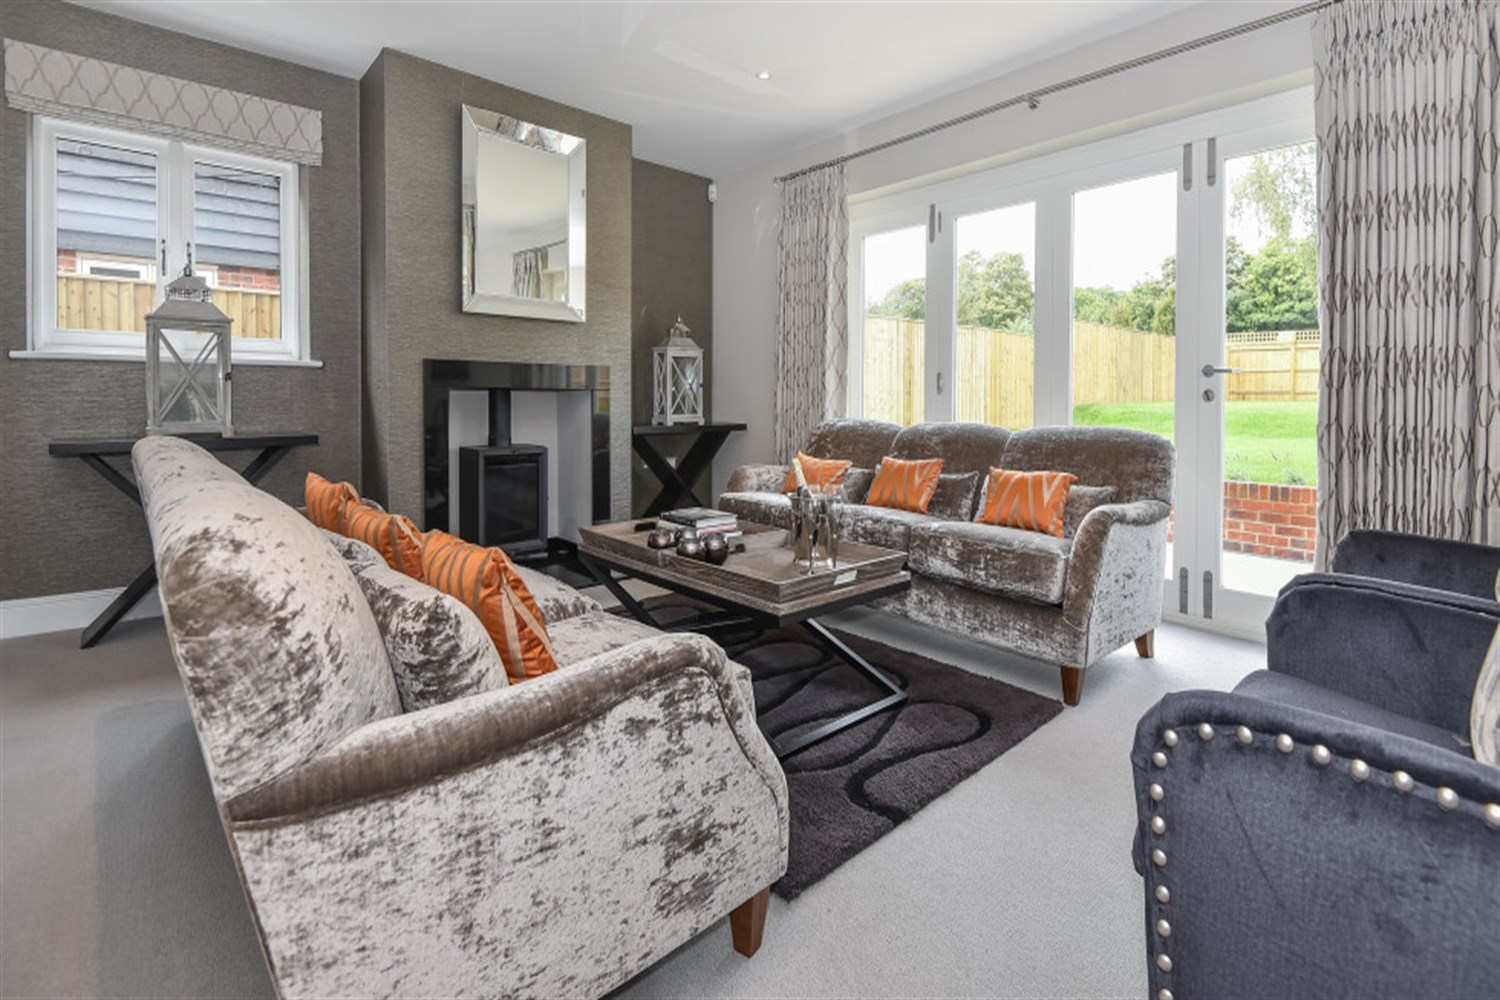 The Willow at Canberra Green - 4 bed detached, Charvil, RG10 9TS